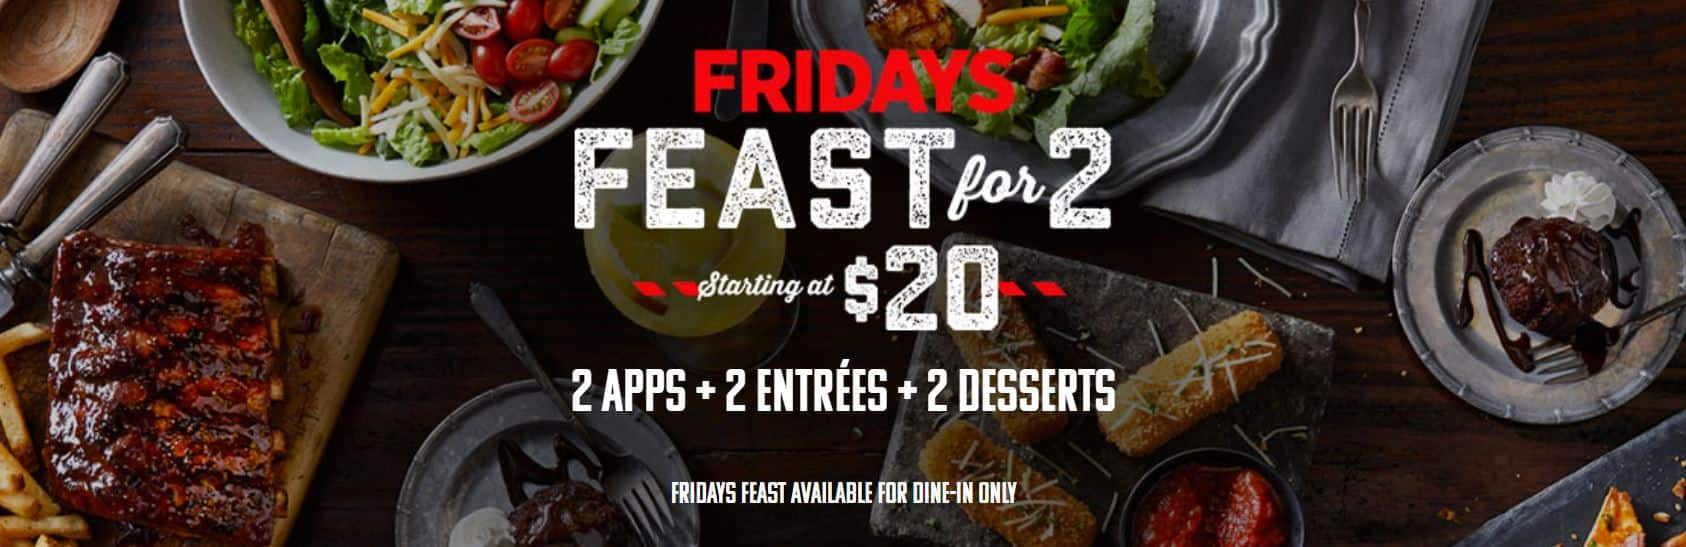 grab a friend and head down to your local tgi fridays for this dine in only deal get two appetizers two entrees and two desserts for just 20 before tax